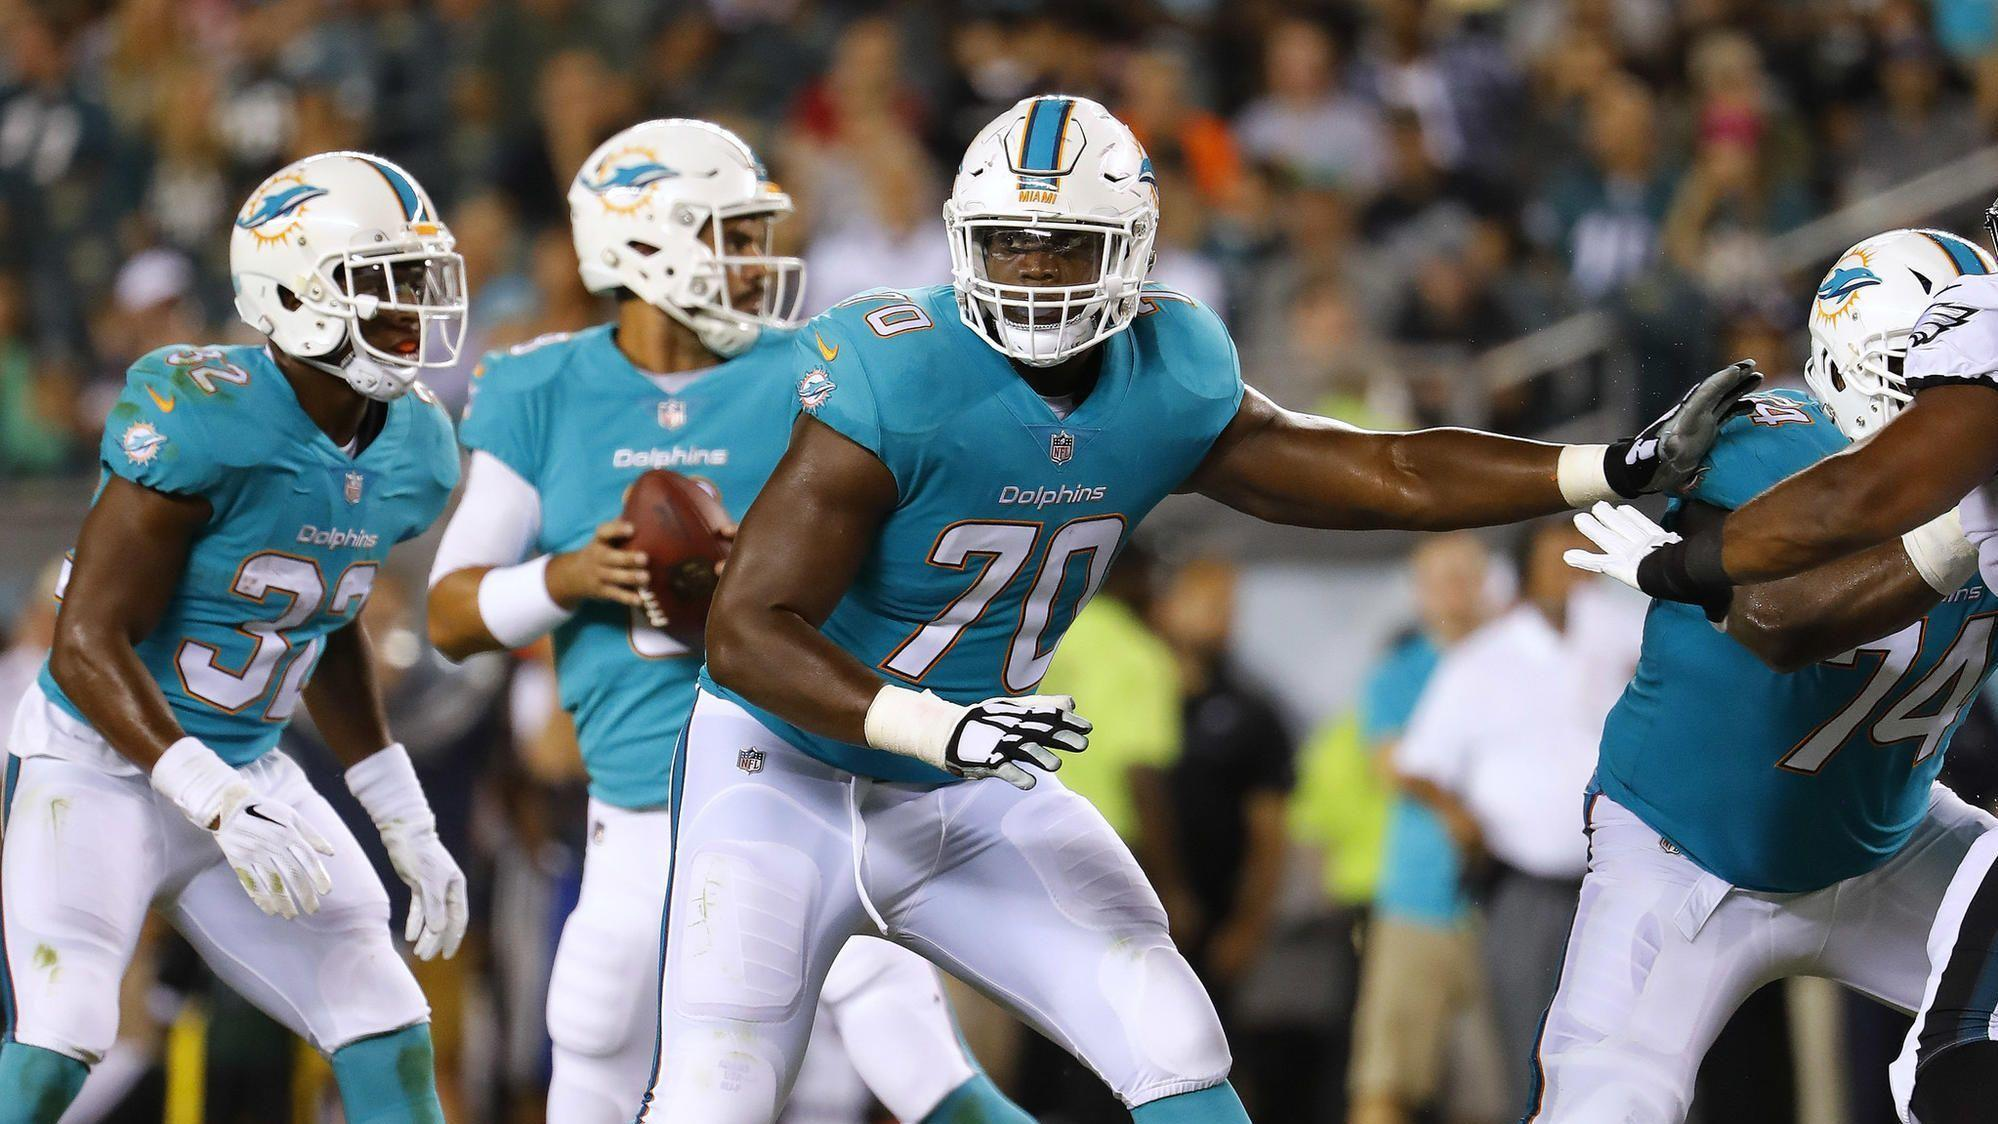 Fl-sp-dolphins-2014-draftees-20180612